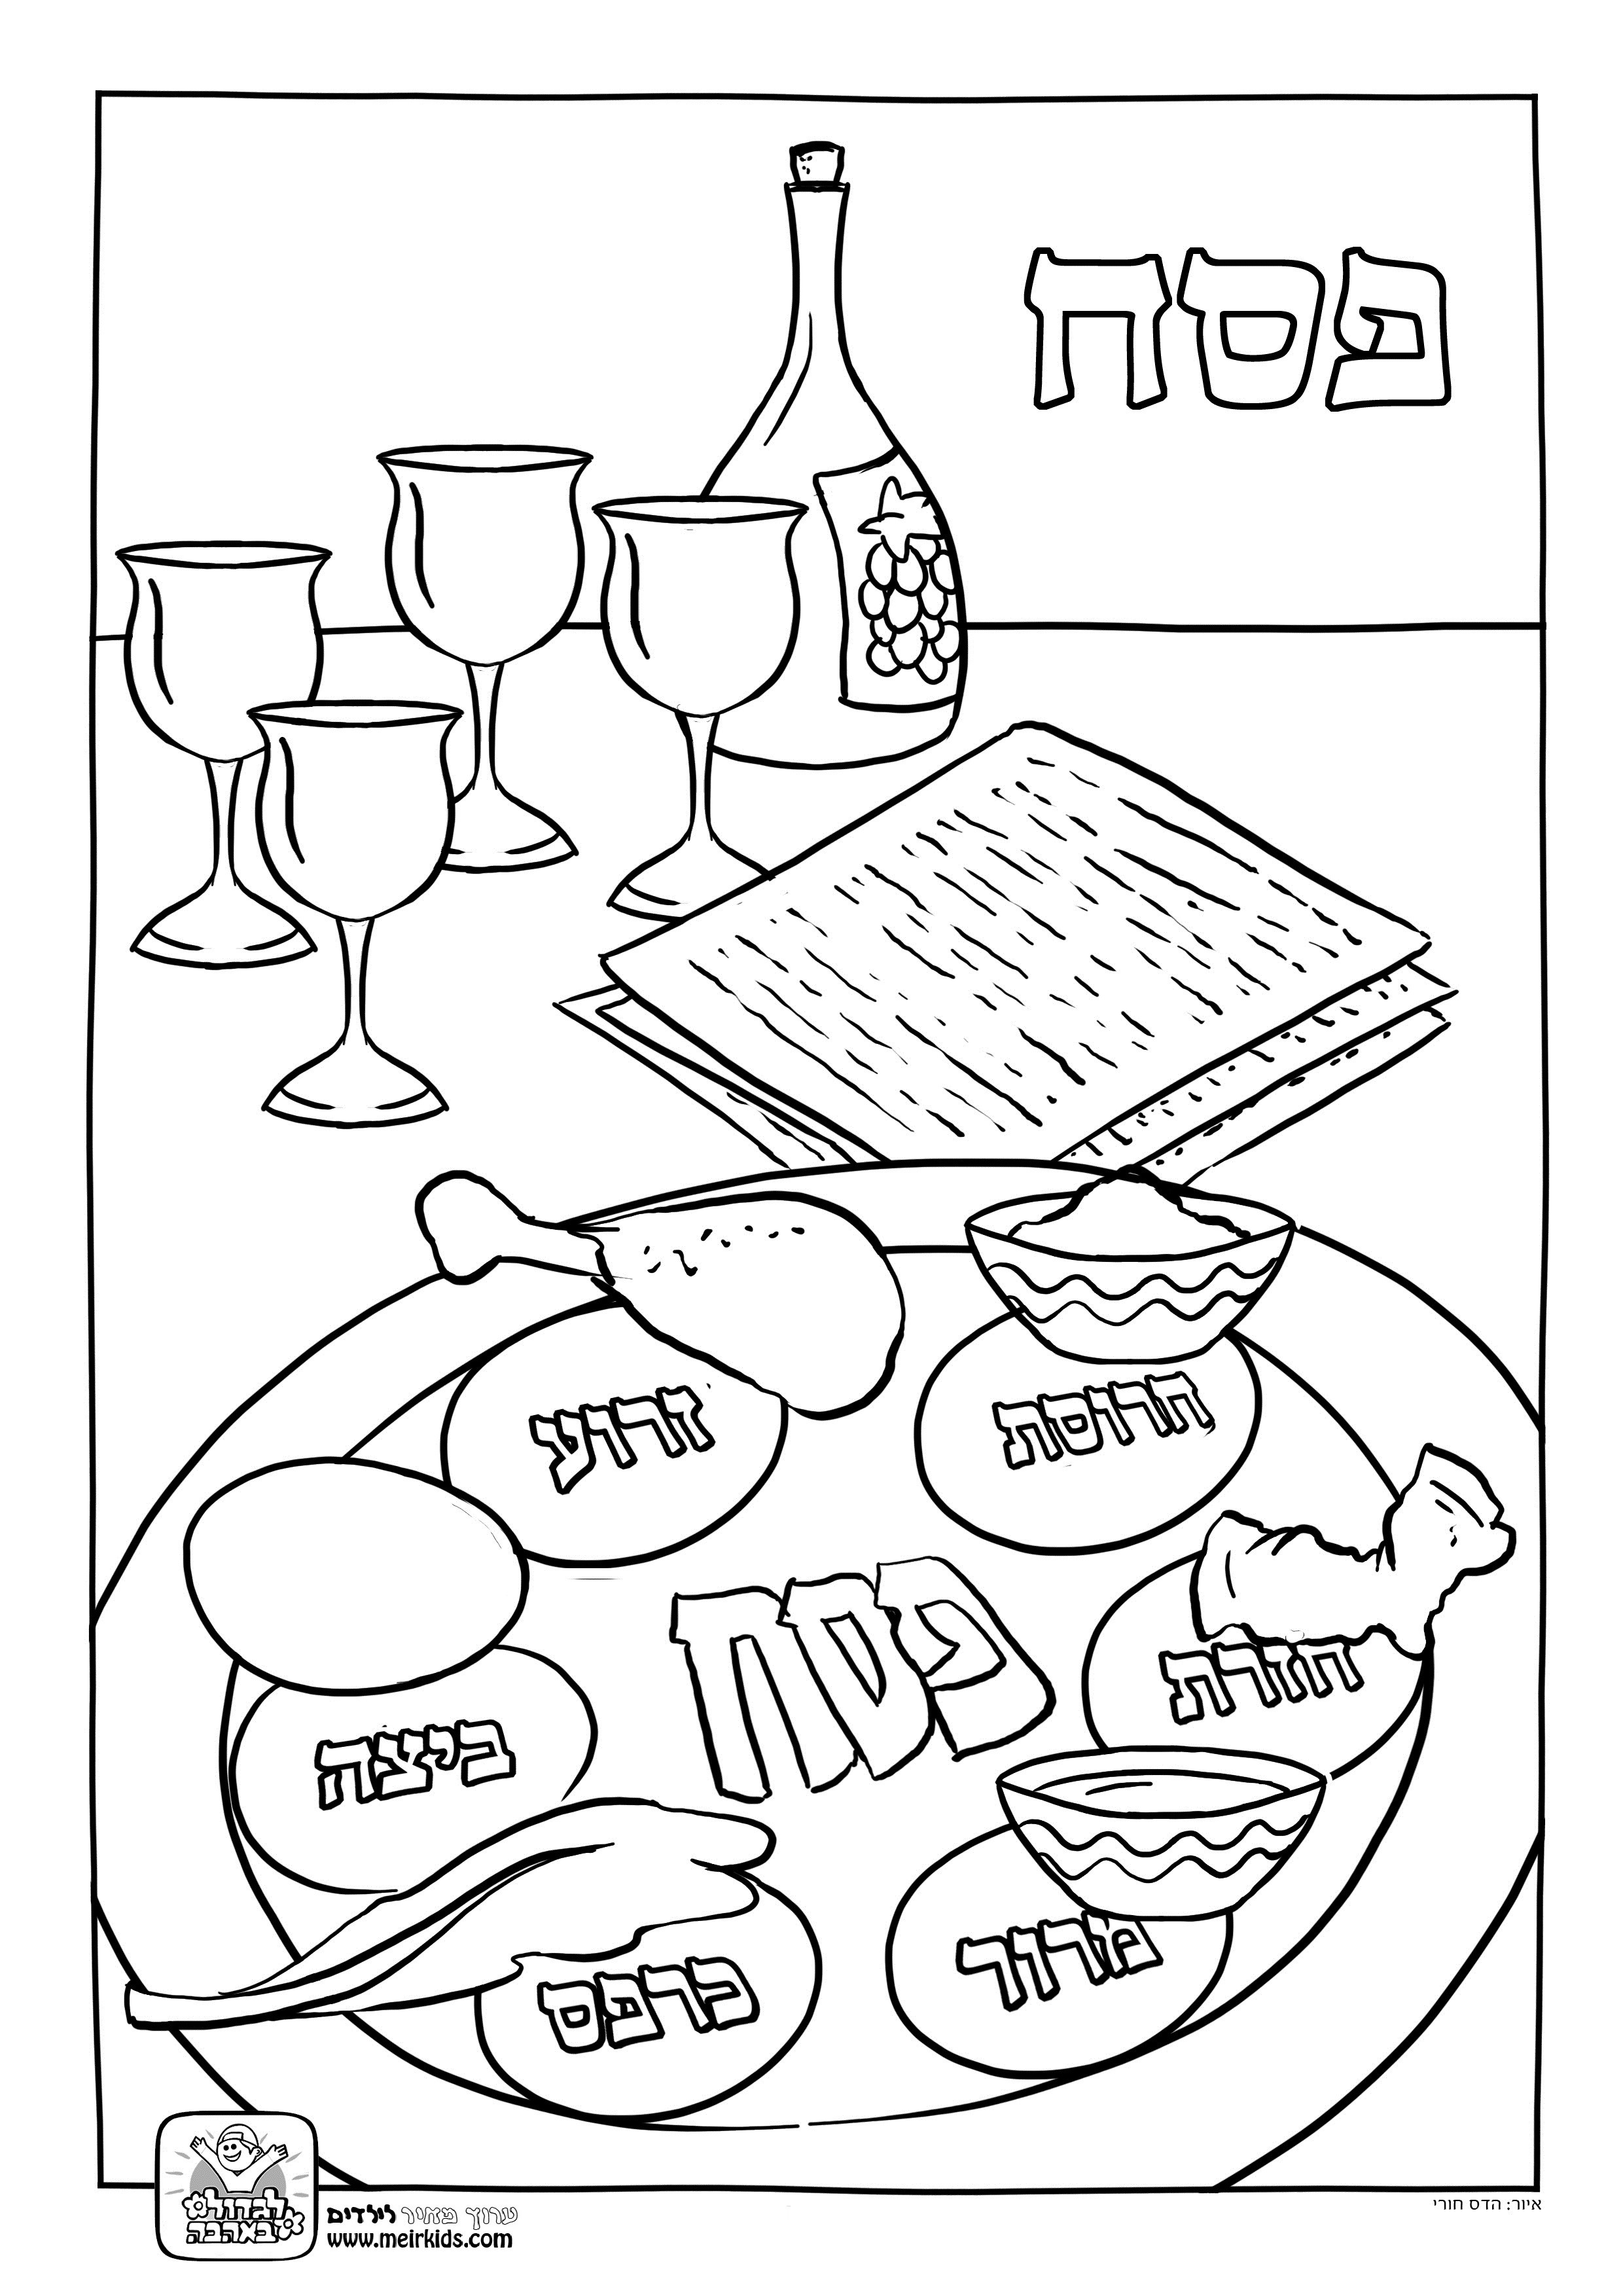 Passover Drawing At Getdrawings